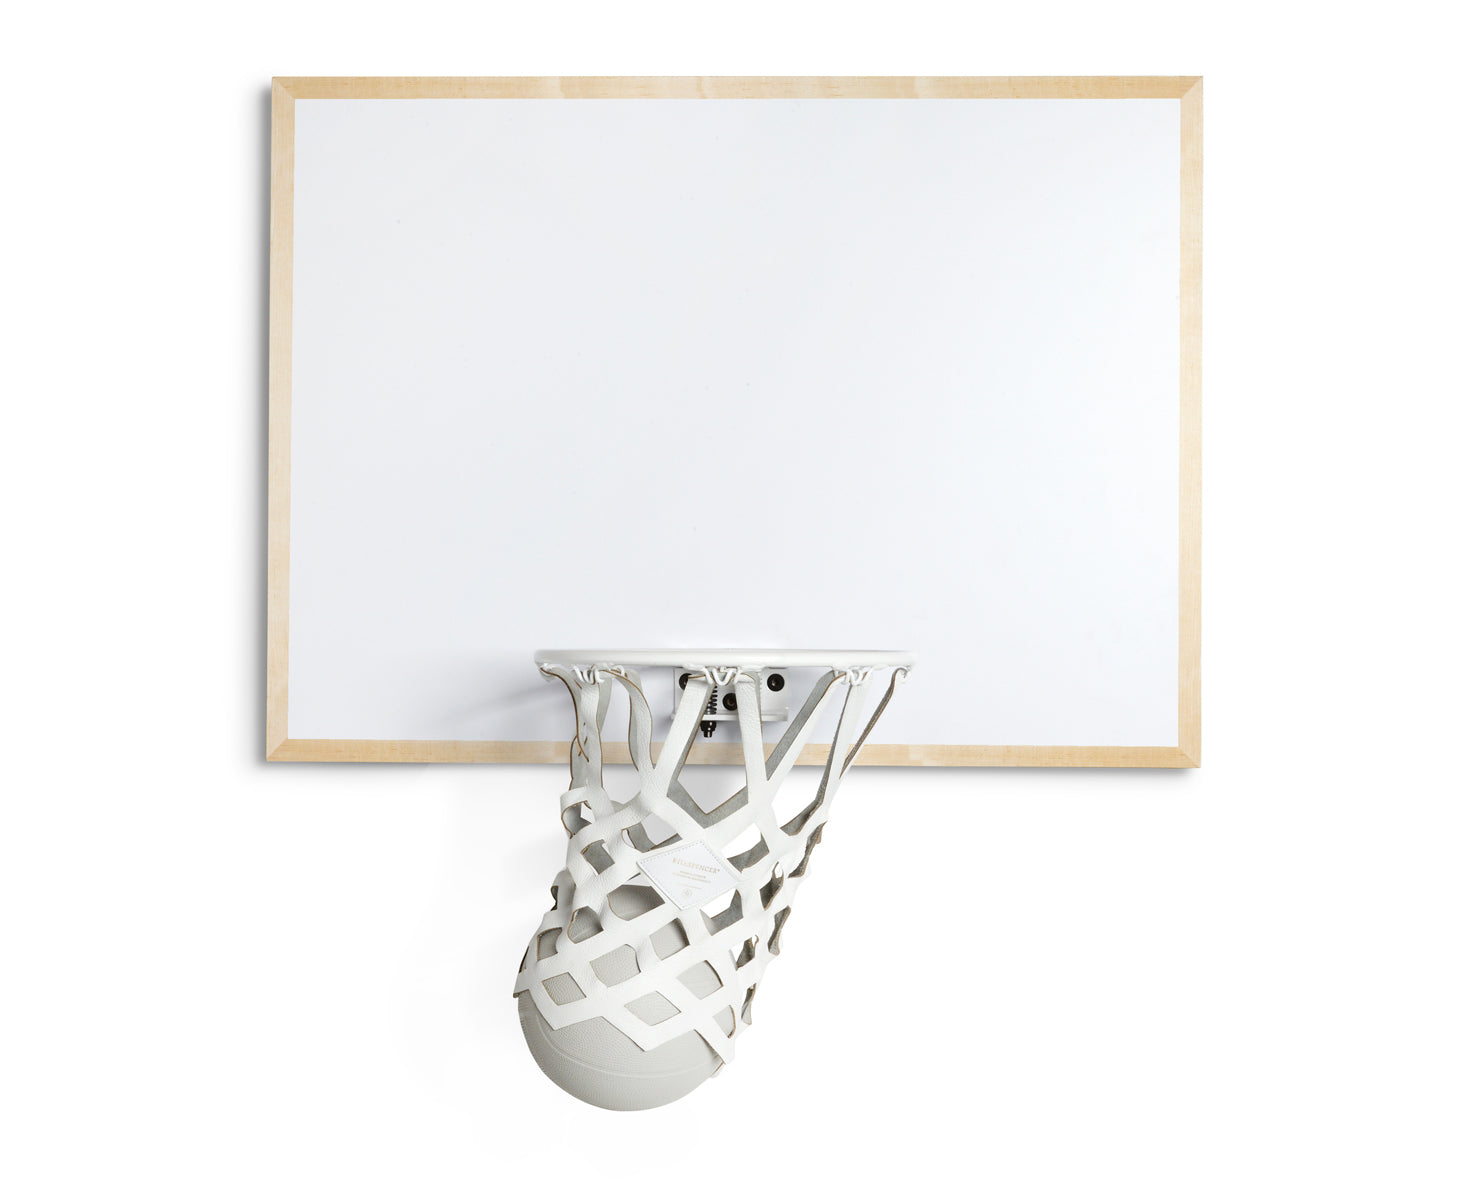 INDOOR MINI BASKETBALL KIT 2.0 | KILLSPENCER® - White Metal and White Natural Maple